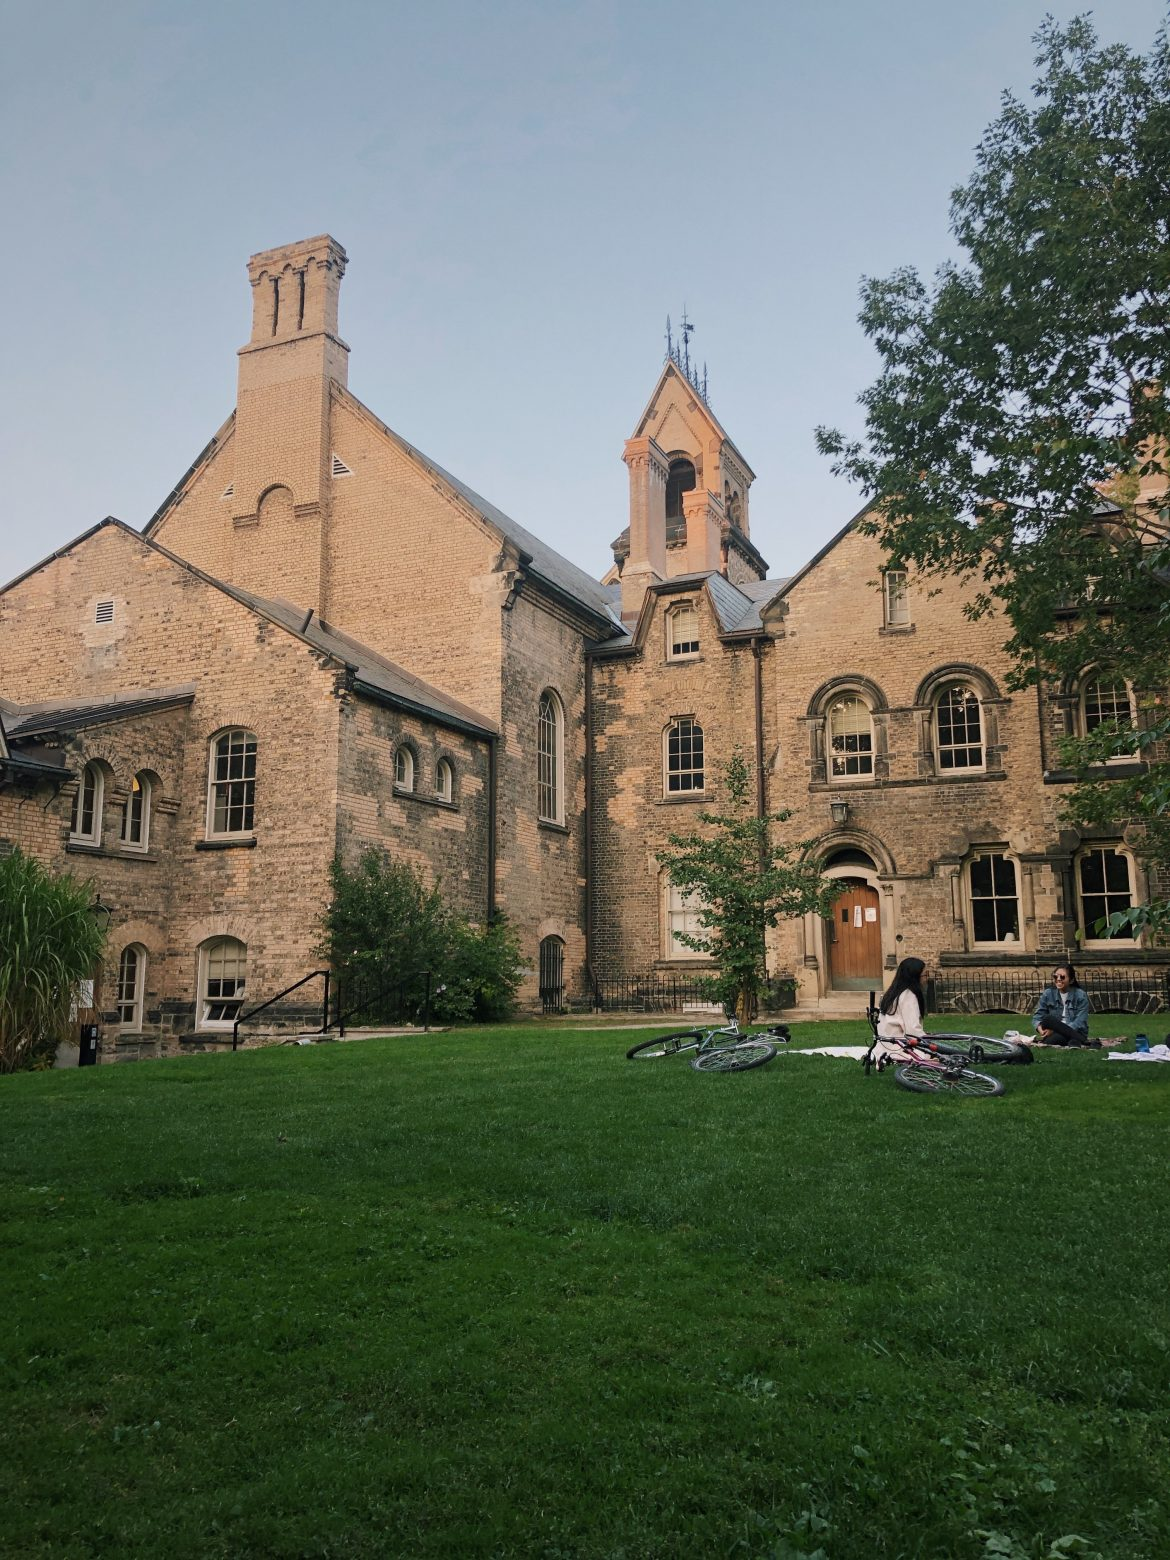 U of T Summer Courses to be Conducted Online